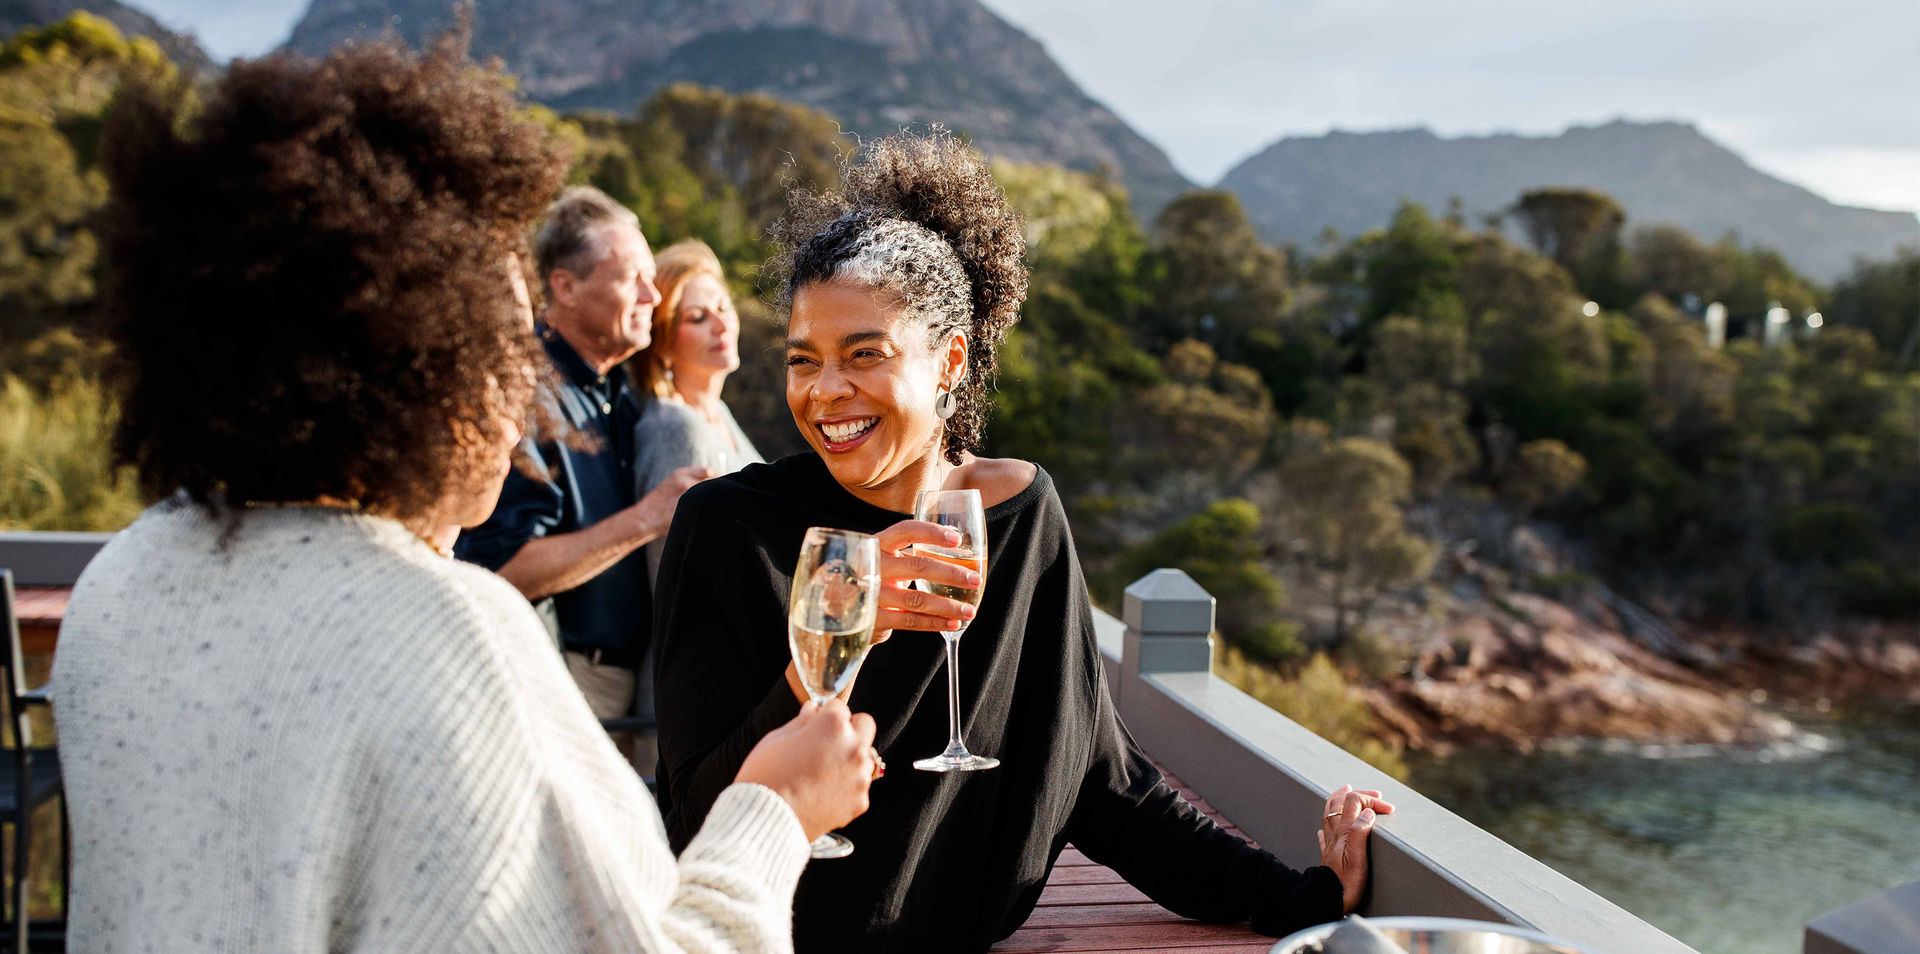 Tasmania's Food, Whiskey and Wine